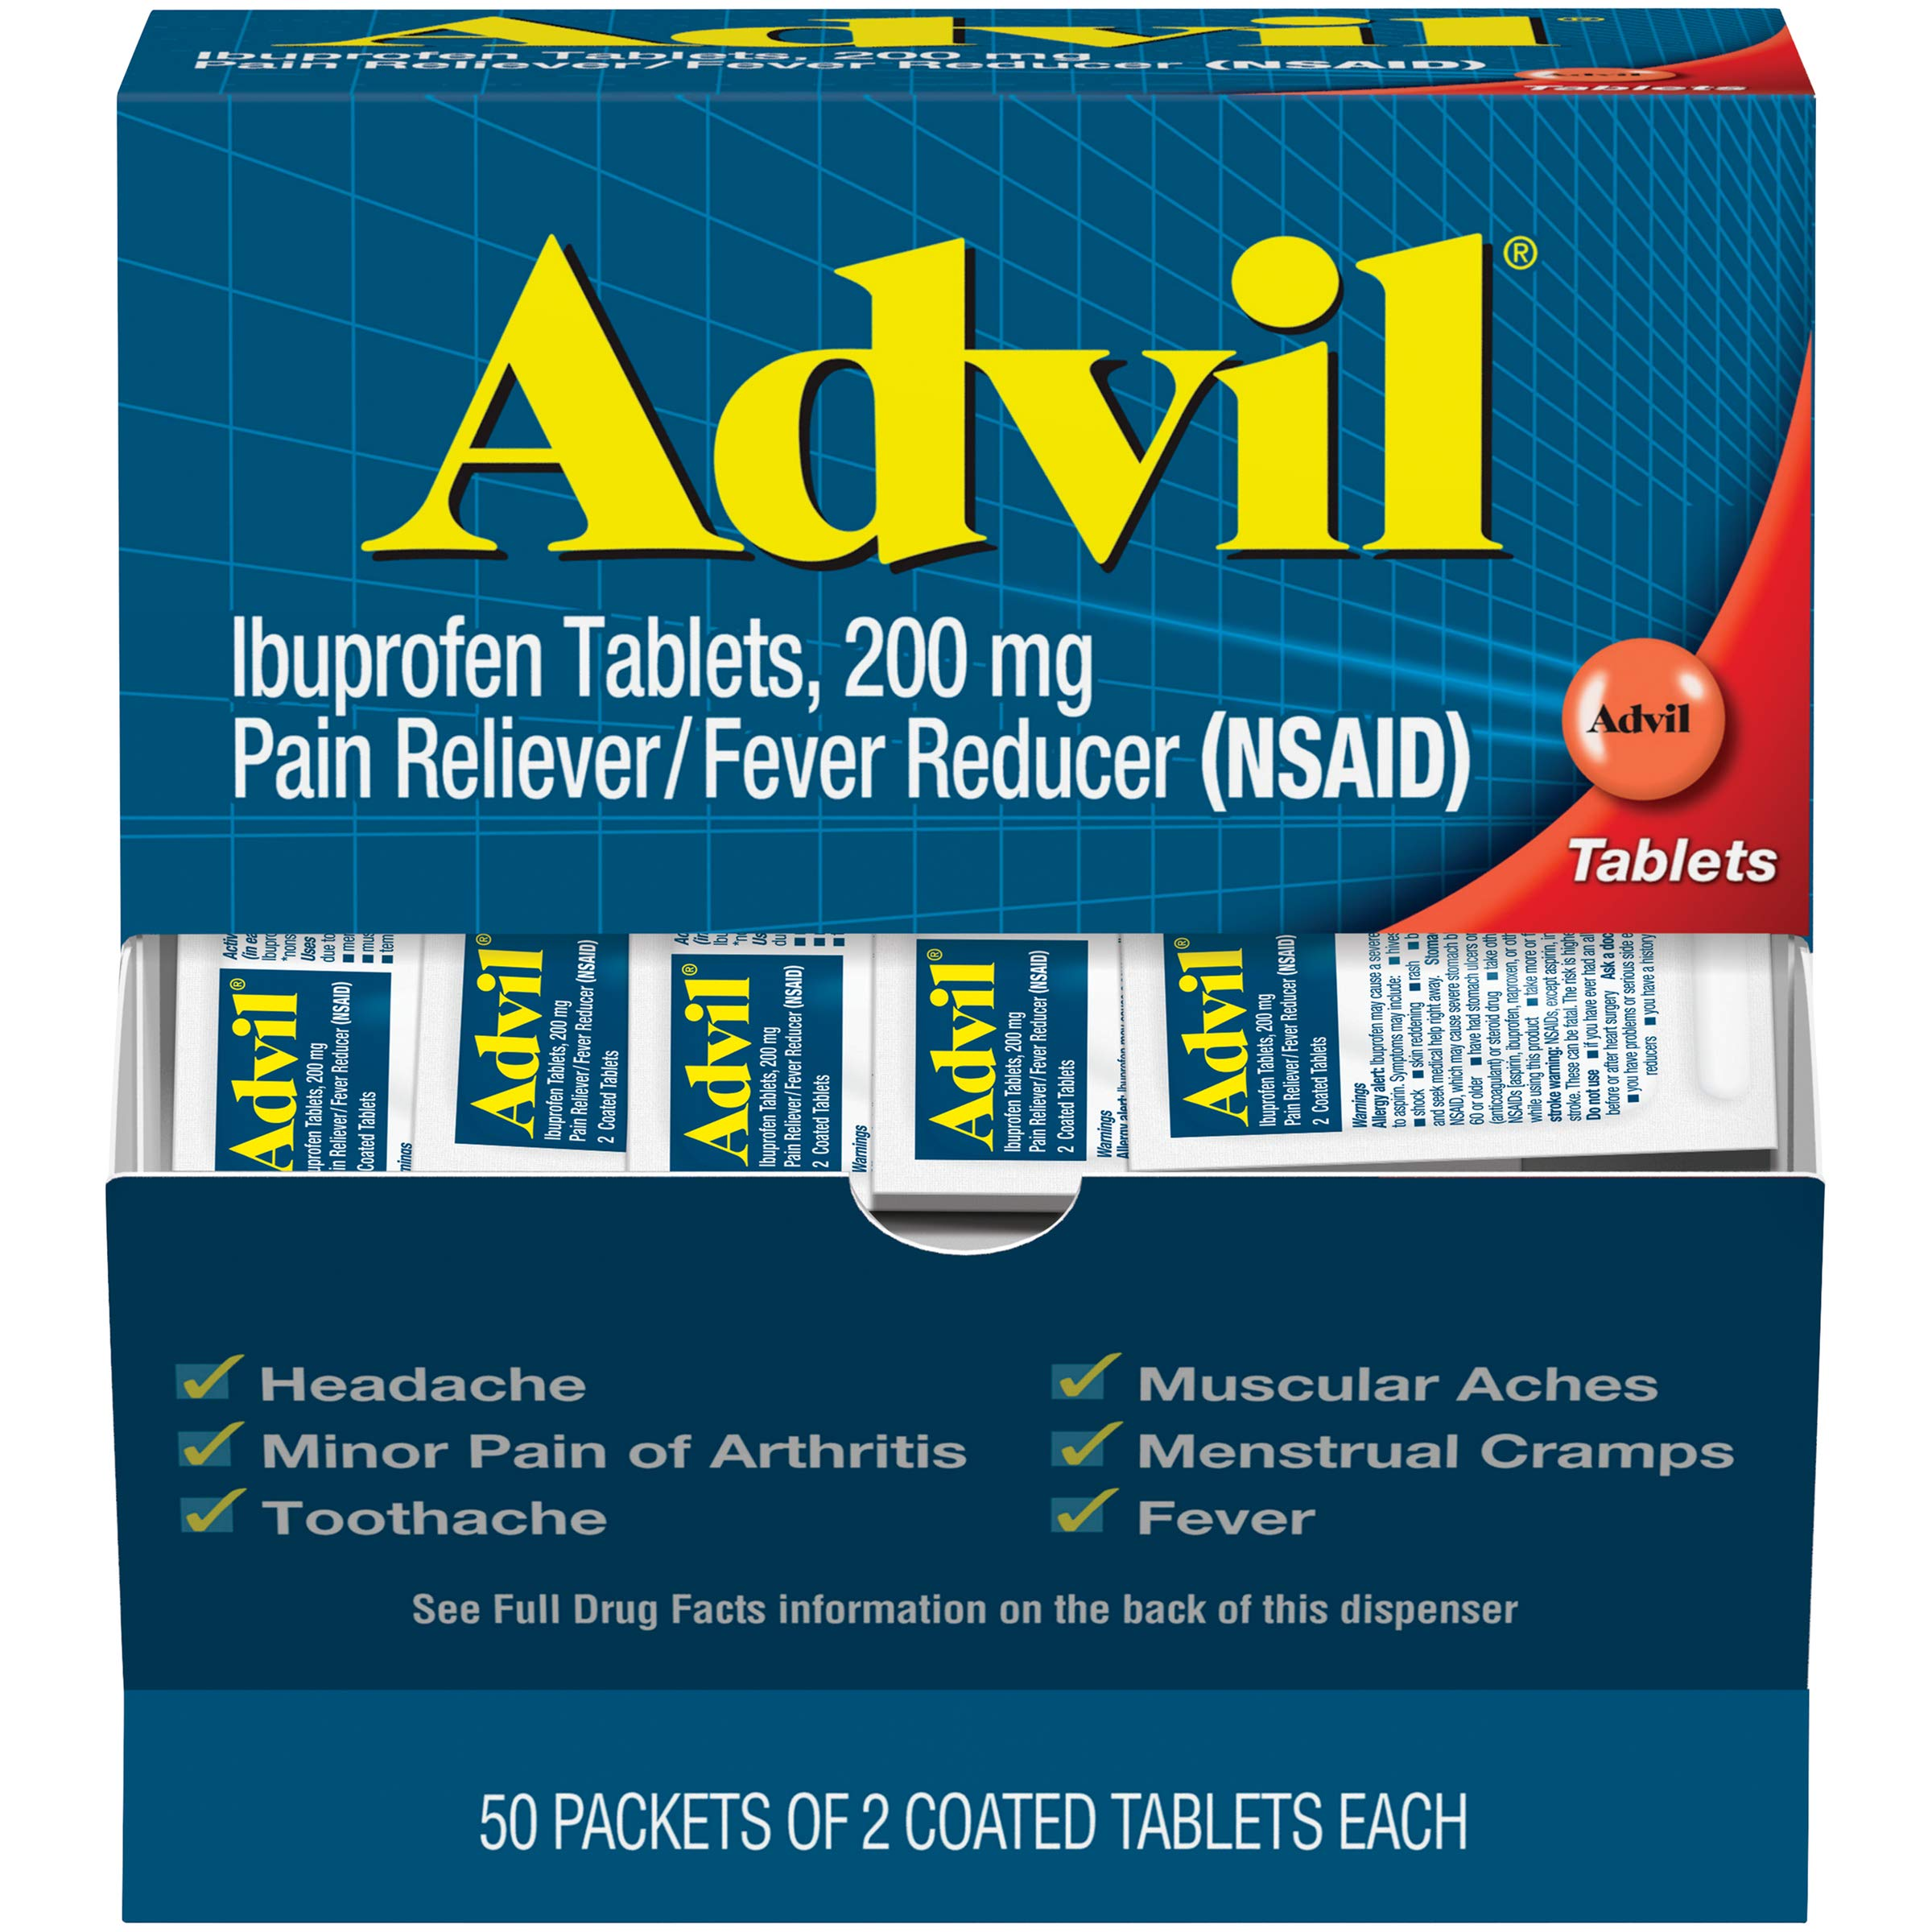 Advil Coated Tablets Pain Reliever and Fever Reducer, Ibuprofen 200mg, 100 Count (50 Packets of 2 tablets), On the Go Pain Relief, 2 Count (Pack of 50)